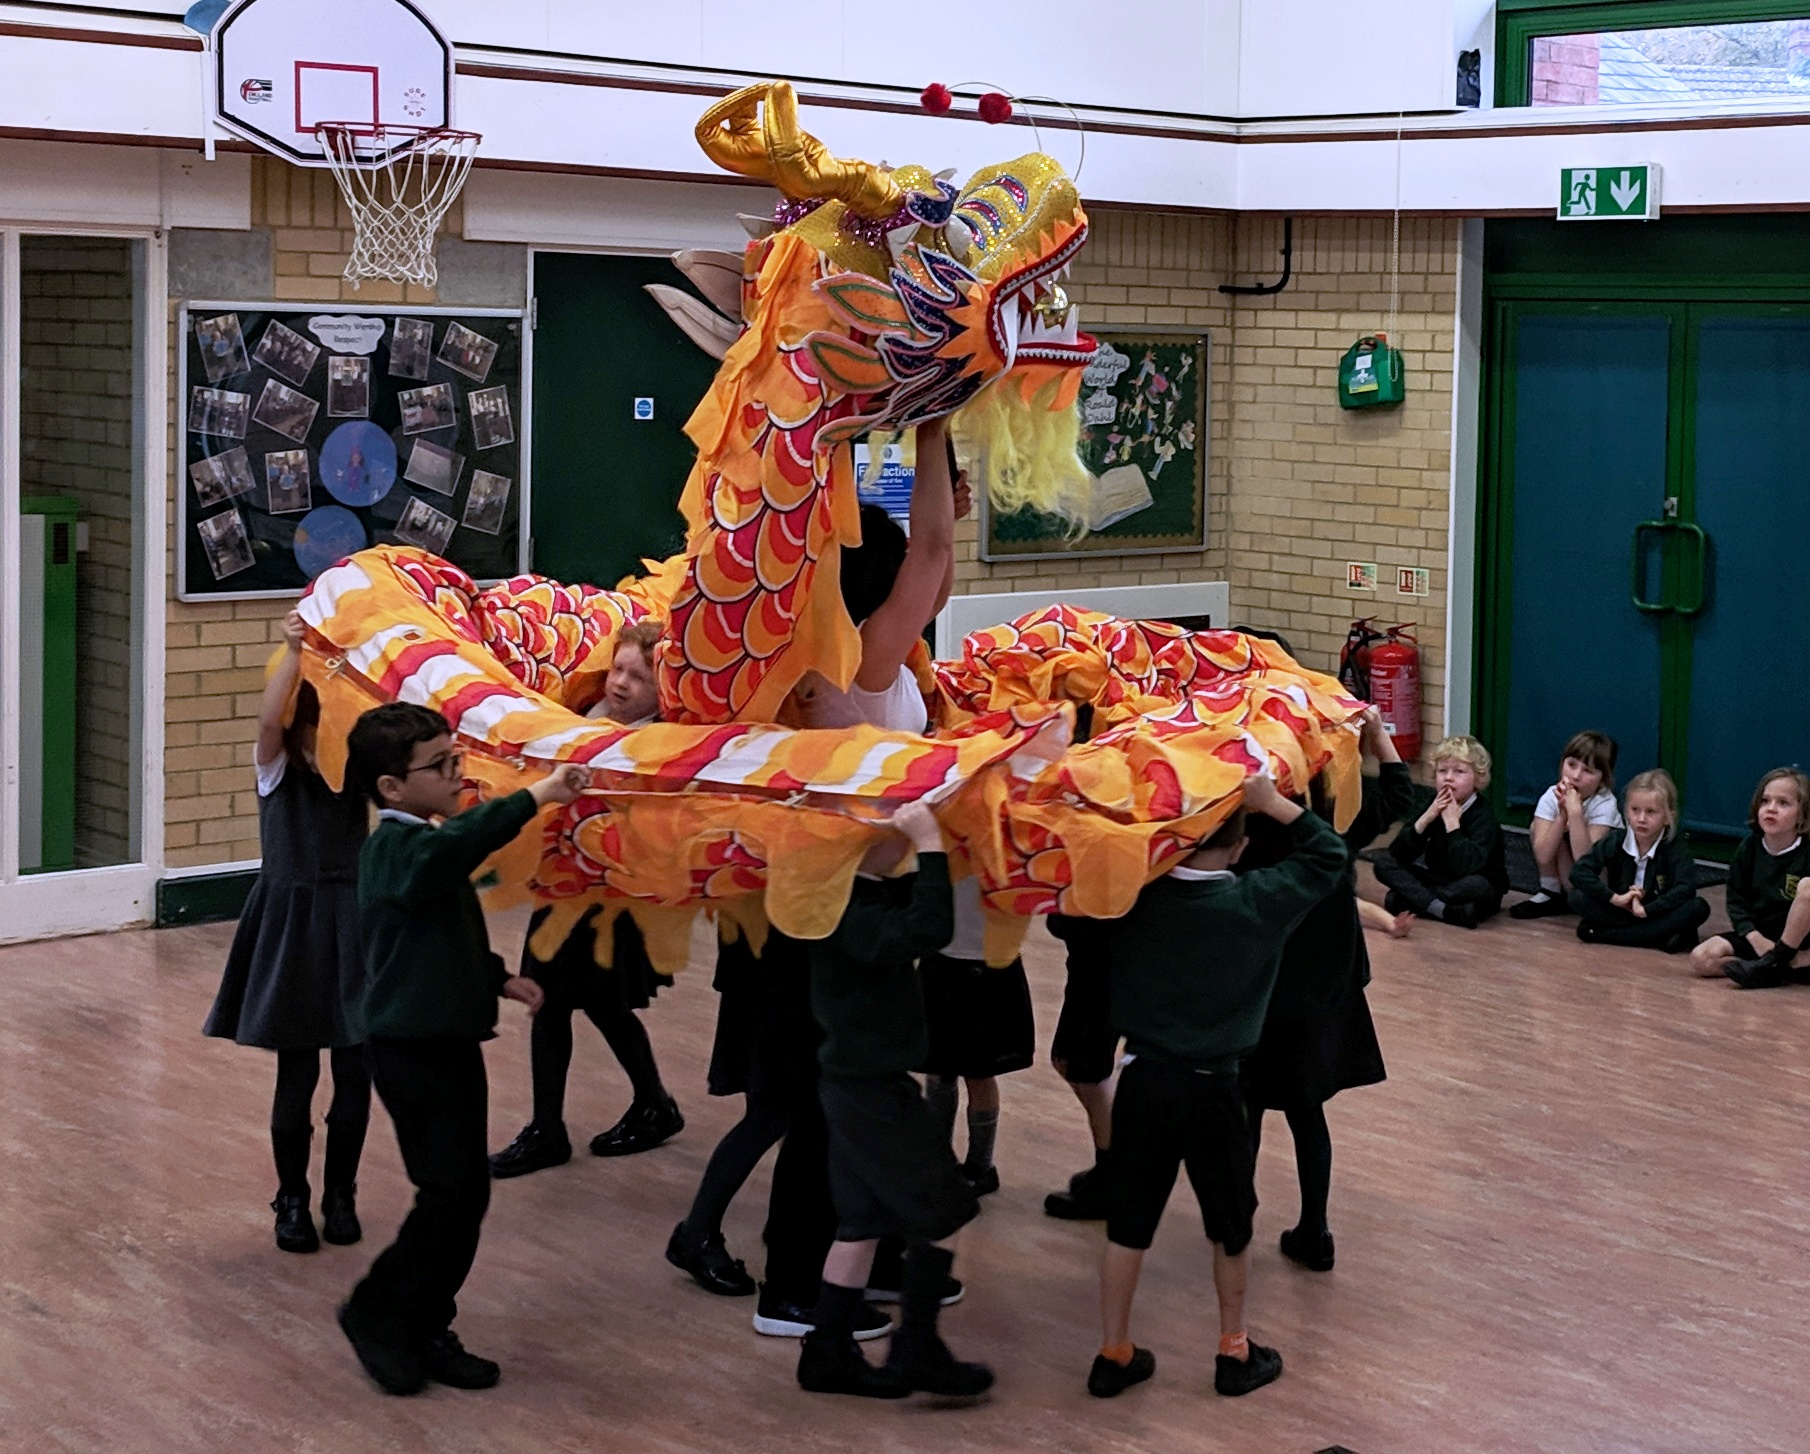 Chinese dragon dancing in school hall